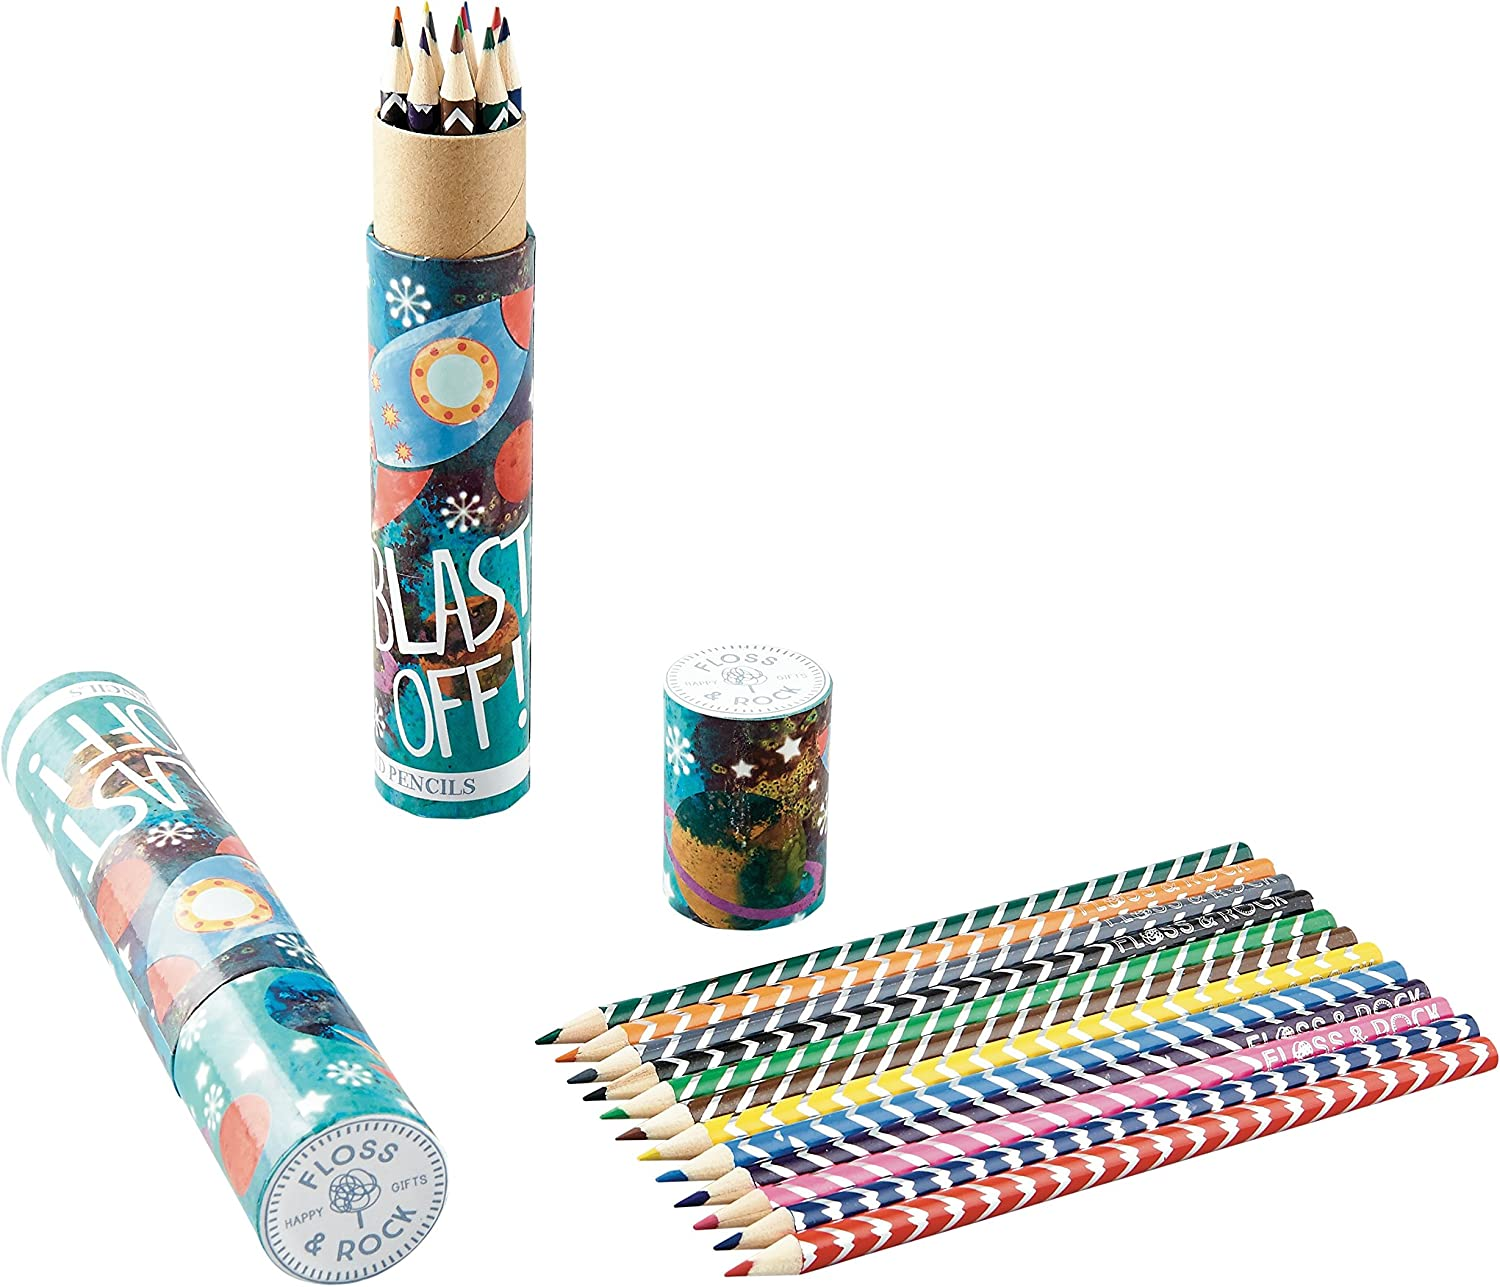 Blast Off Rocket Ship 12 NEW before selling shipfree Piece D Pack in Assorted Colored Pencil